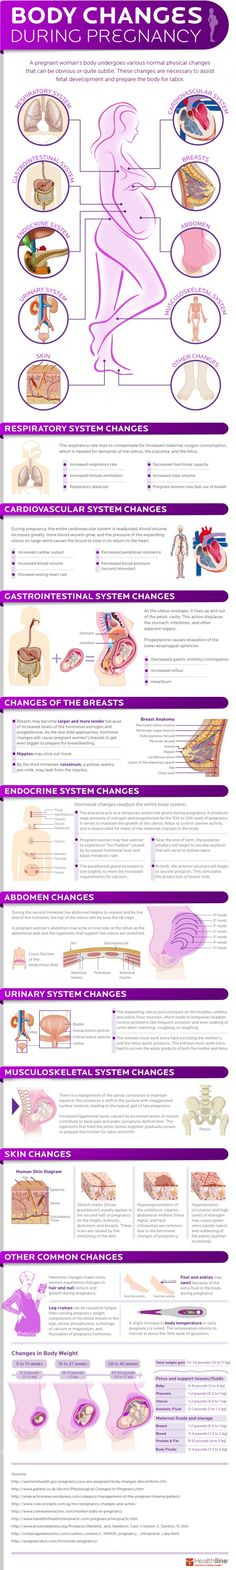 Body Changes During Pregnancy Infographic